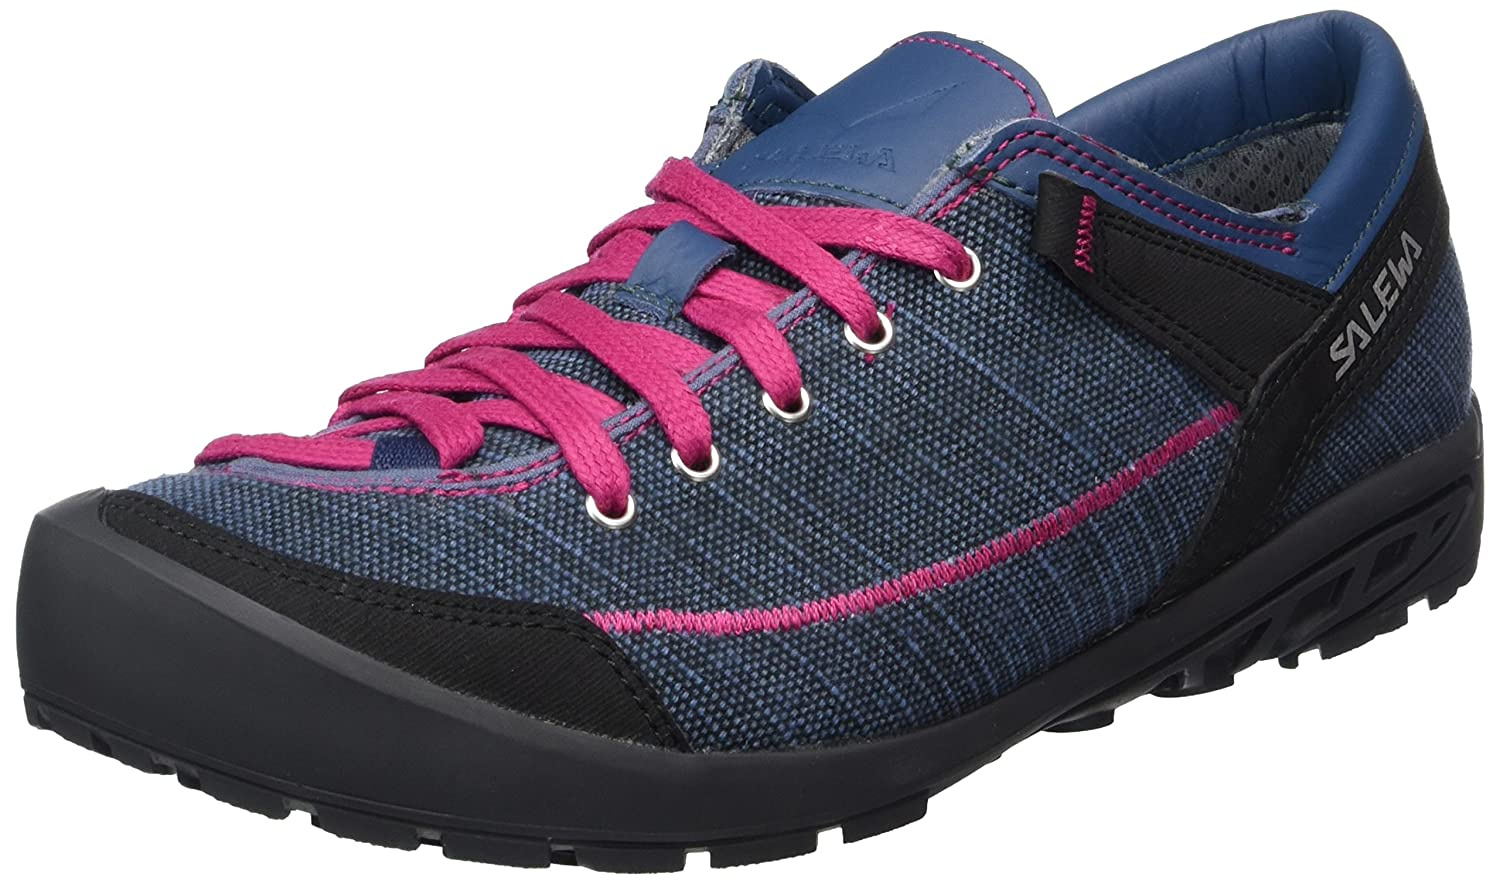 Salewa WS Road, Alpine Road, WS Derby Femme Bleu (Washed Denim Denim/Fuchsia/Fuchsia 8585) 986c2a8 - fast-weightloss-diet.space